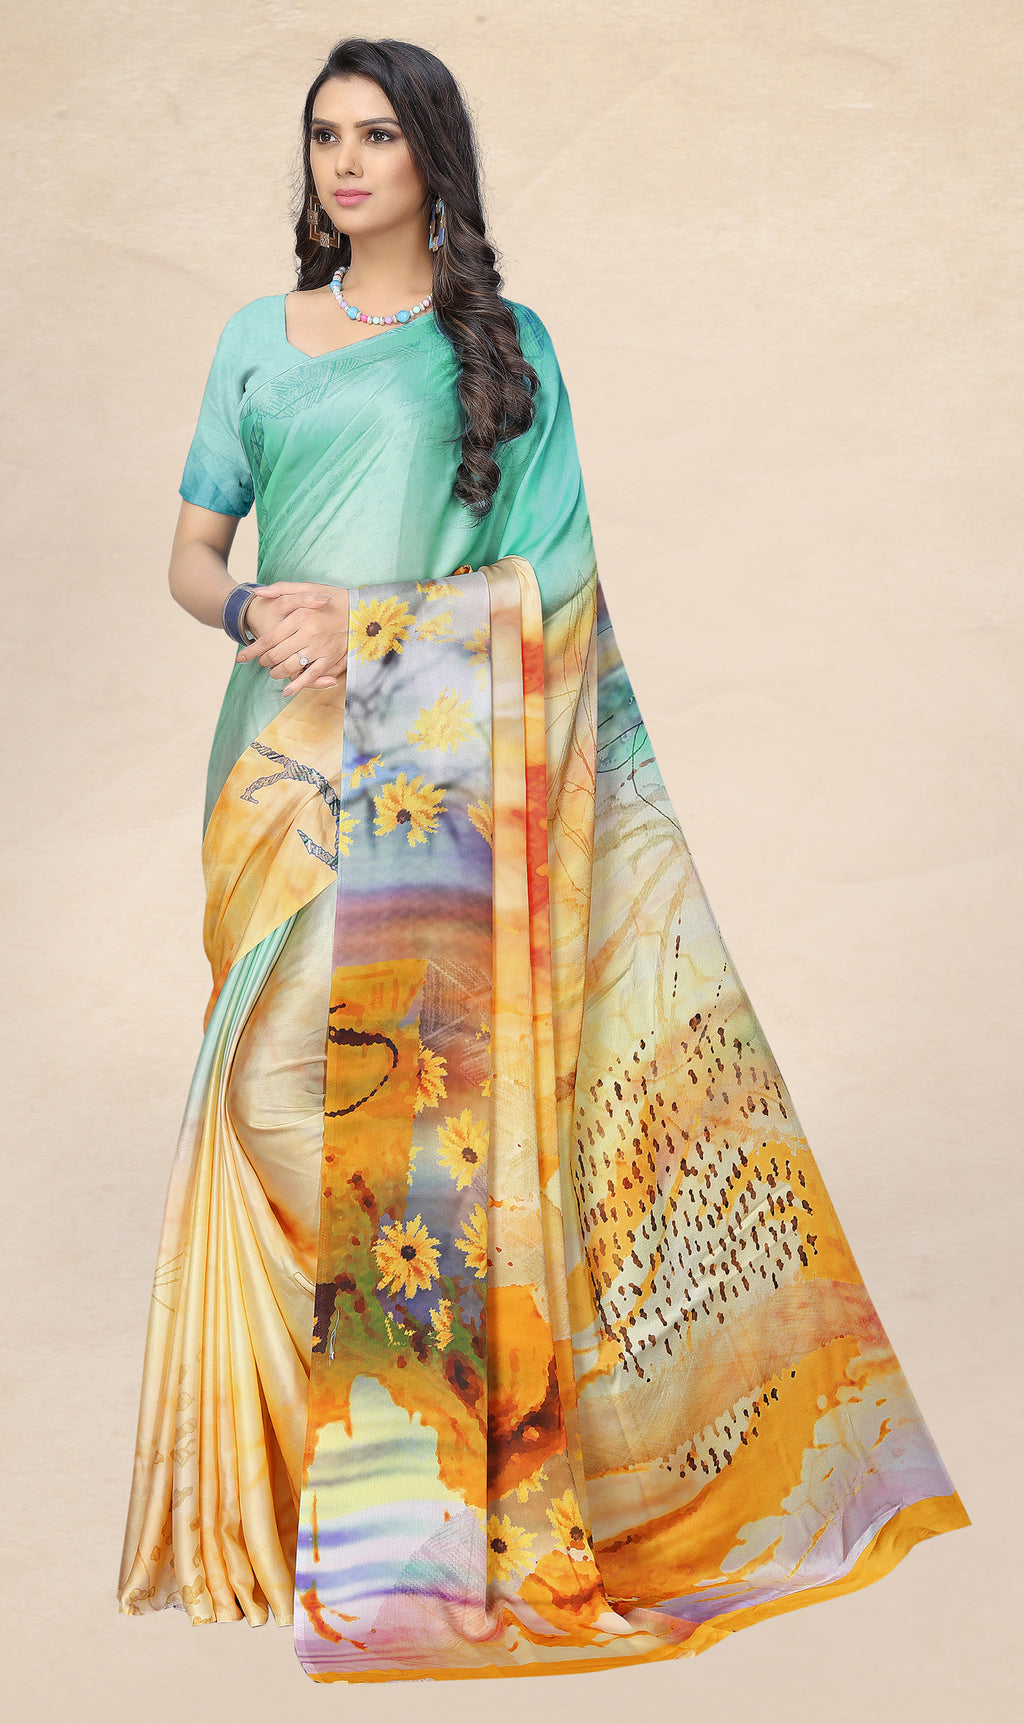 Multi Color Satin Digital Print Kitty Party Sarees NYF-8142